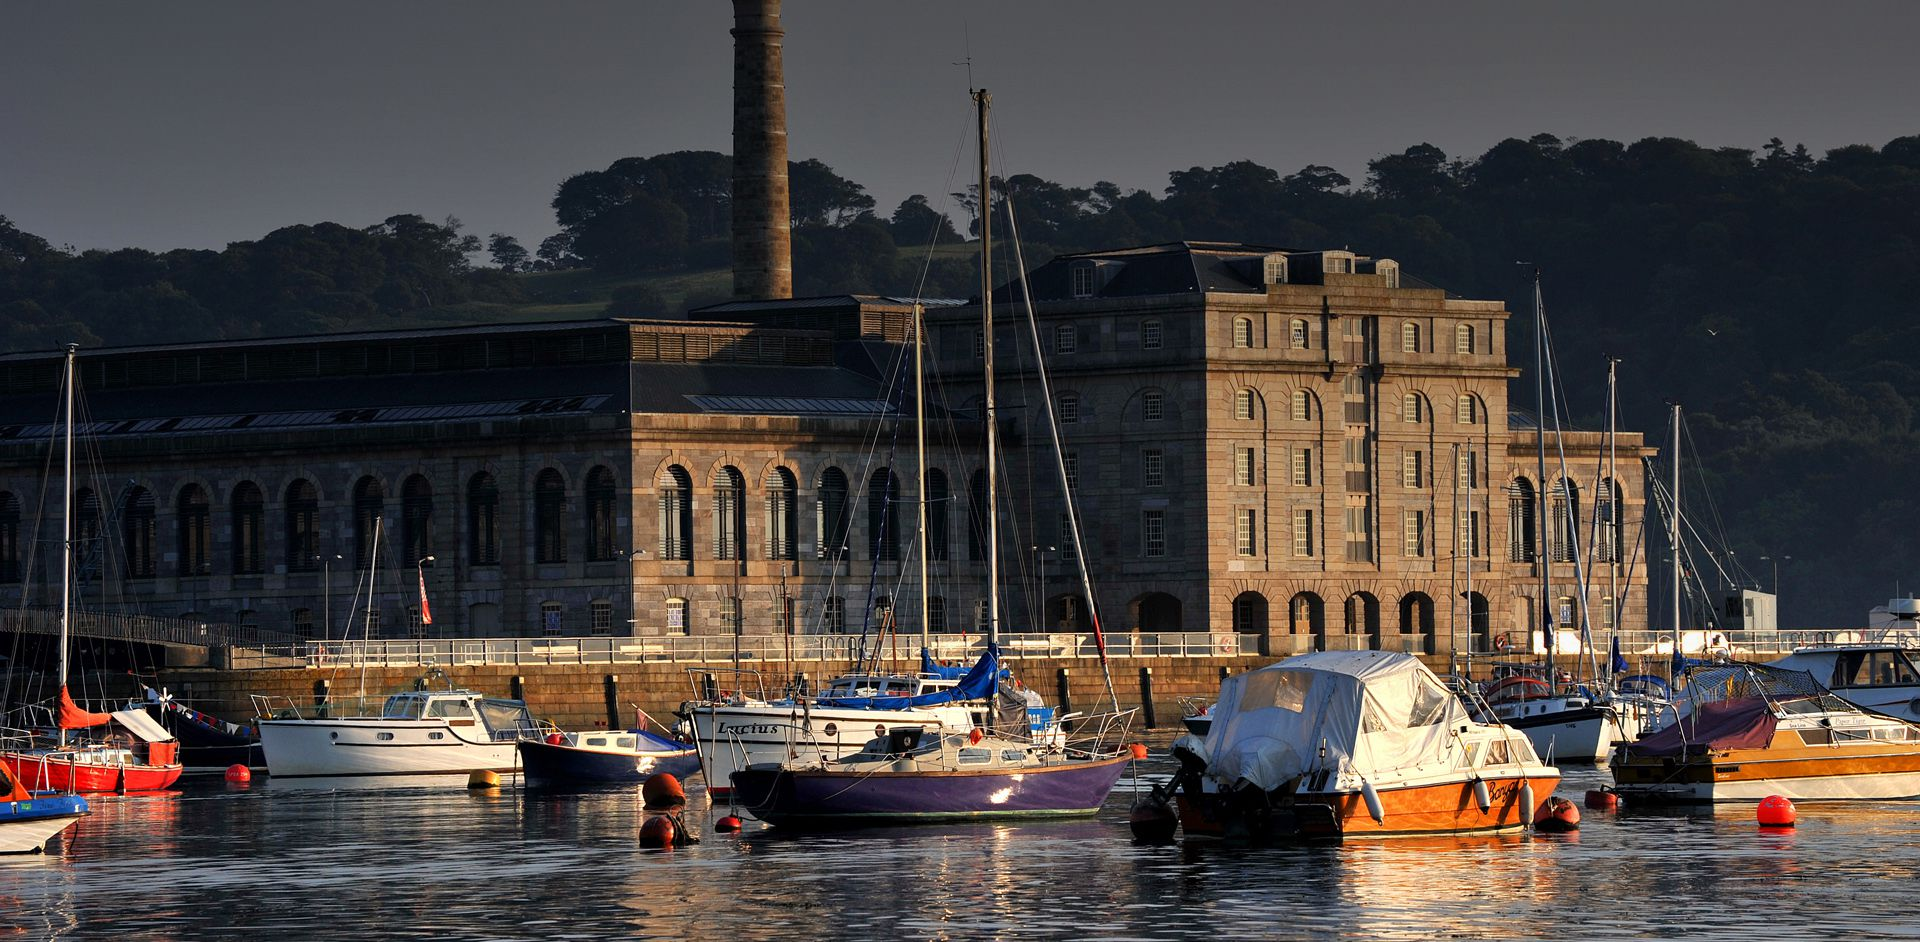 Plymouth Boat Trips Barbican, Royal William Yard & Mount Edgcumbe Ferry - Slide One